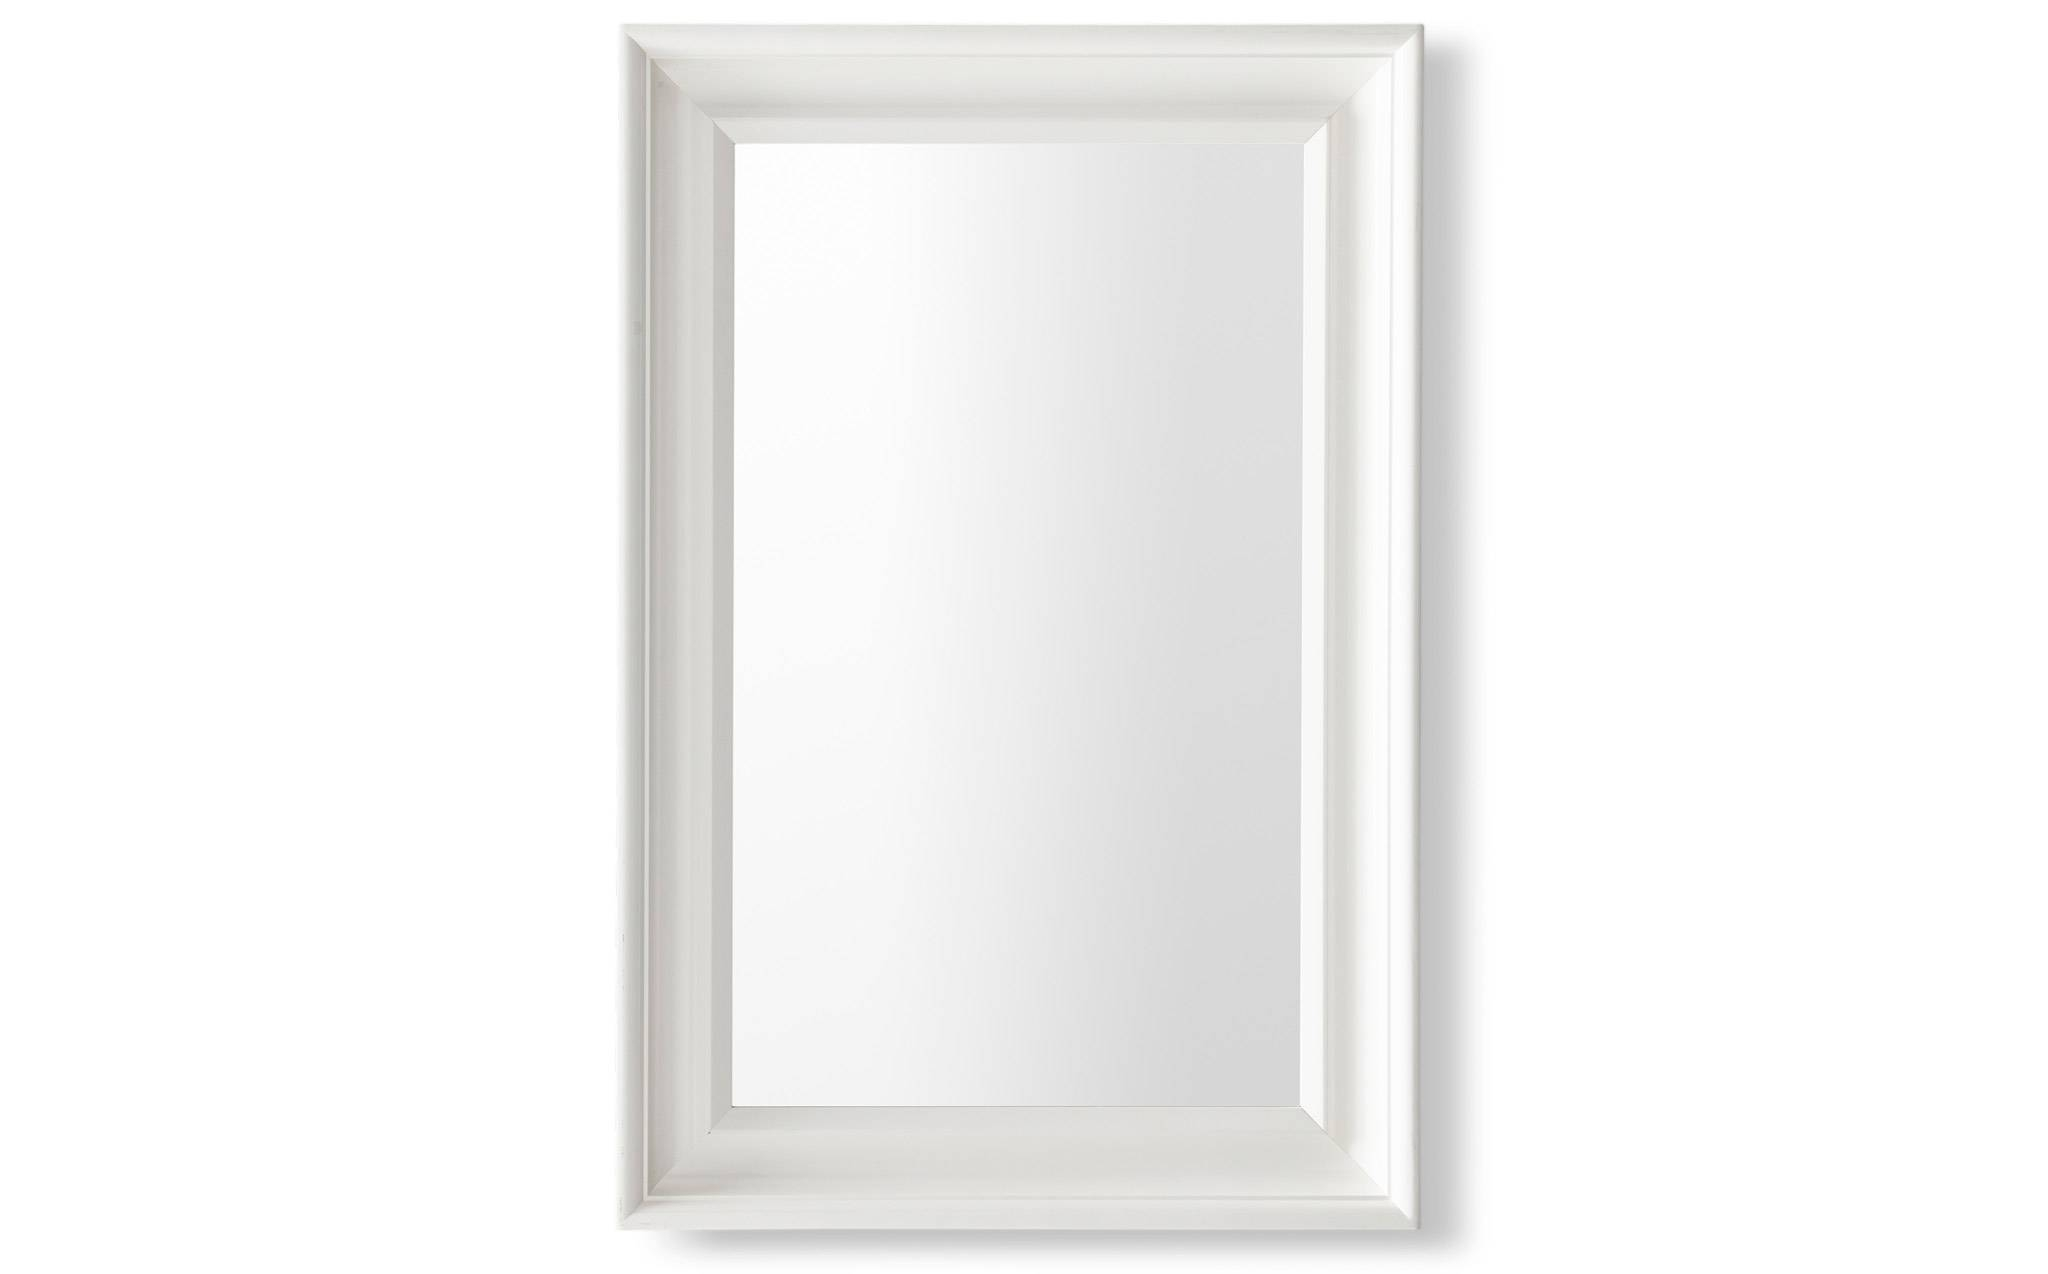 Wall Mirrors - Wall Mirrors With Shelves - Ikea pertaining to Bright Coloured Mirrors (Image 25 of 25)